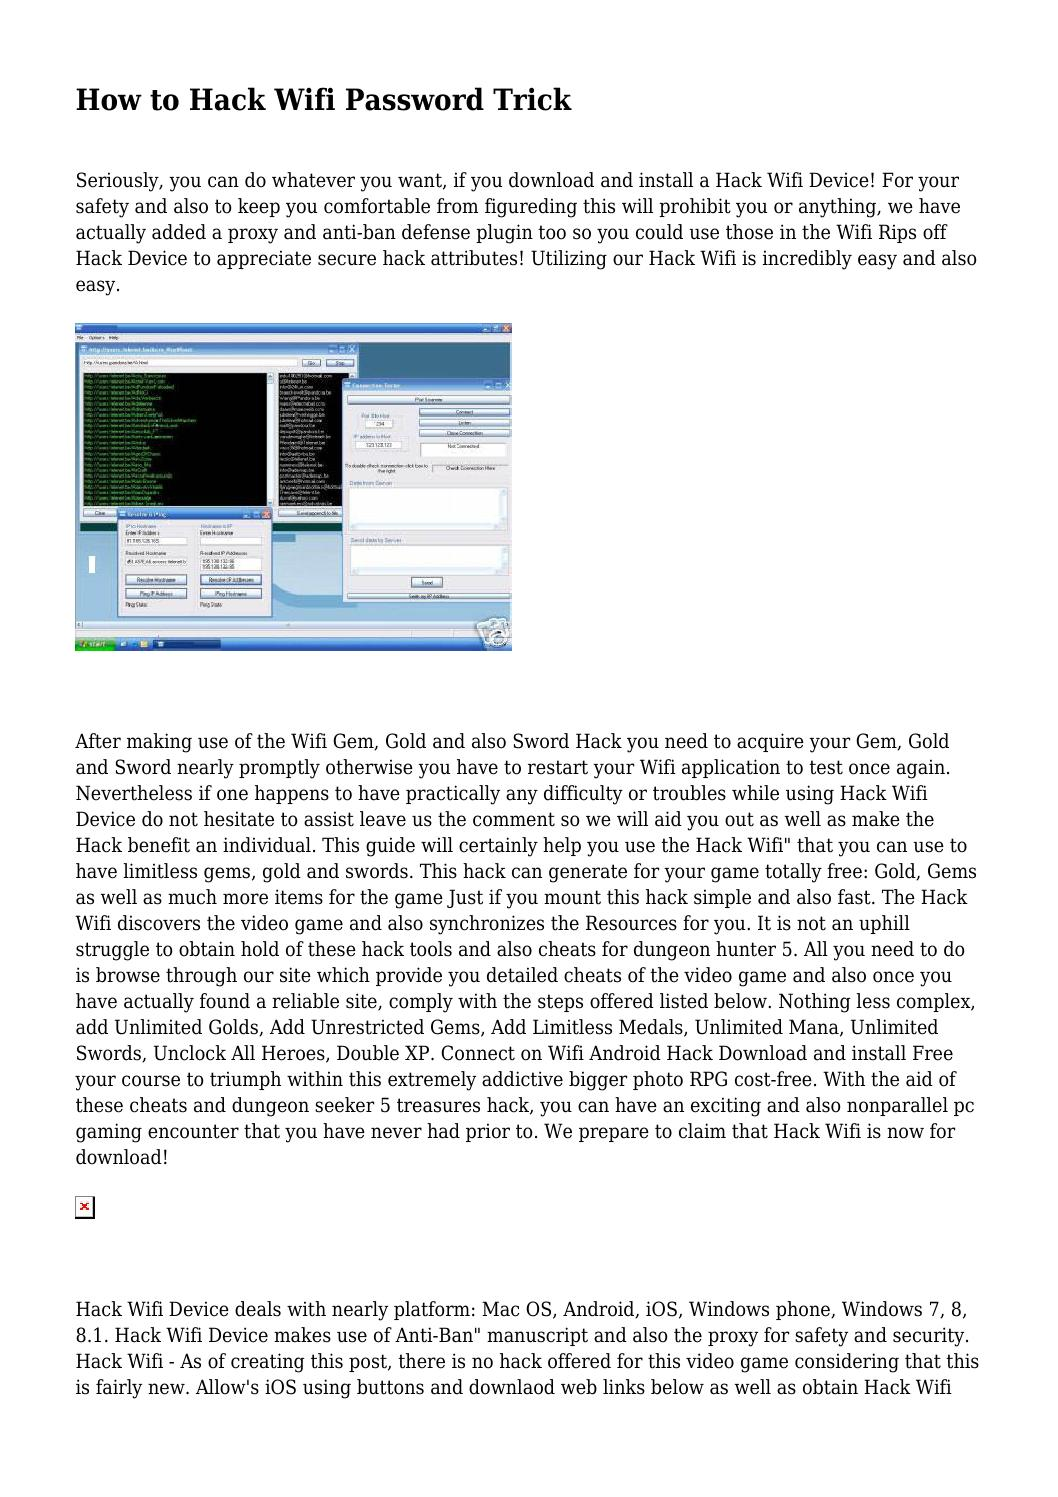 How to Hack Wifi Password Trick by gustyknack586 - issuu